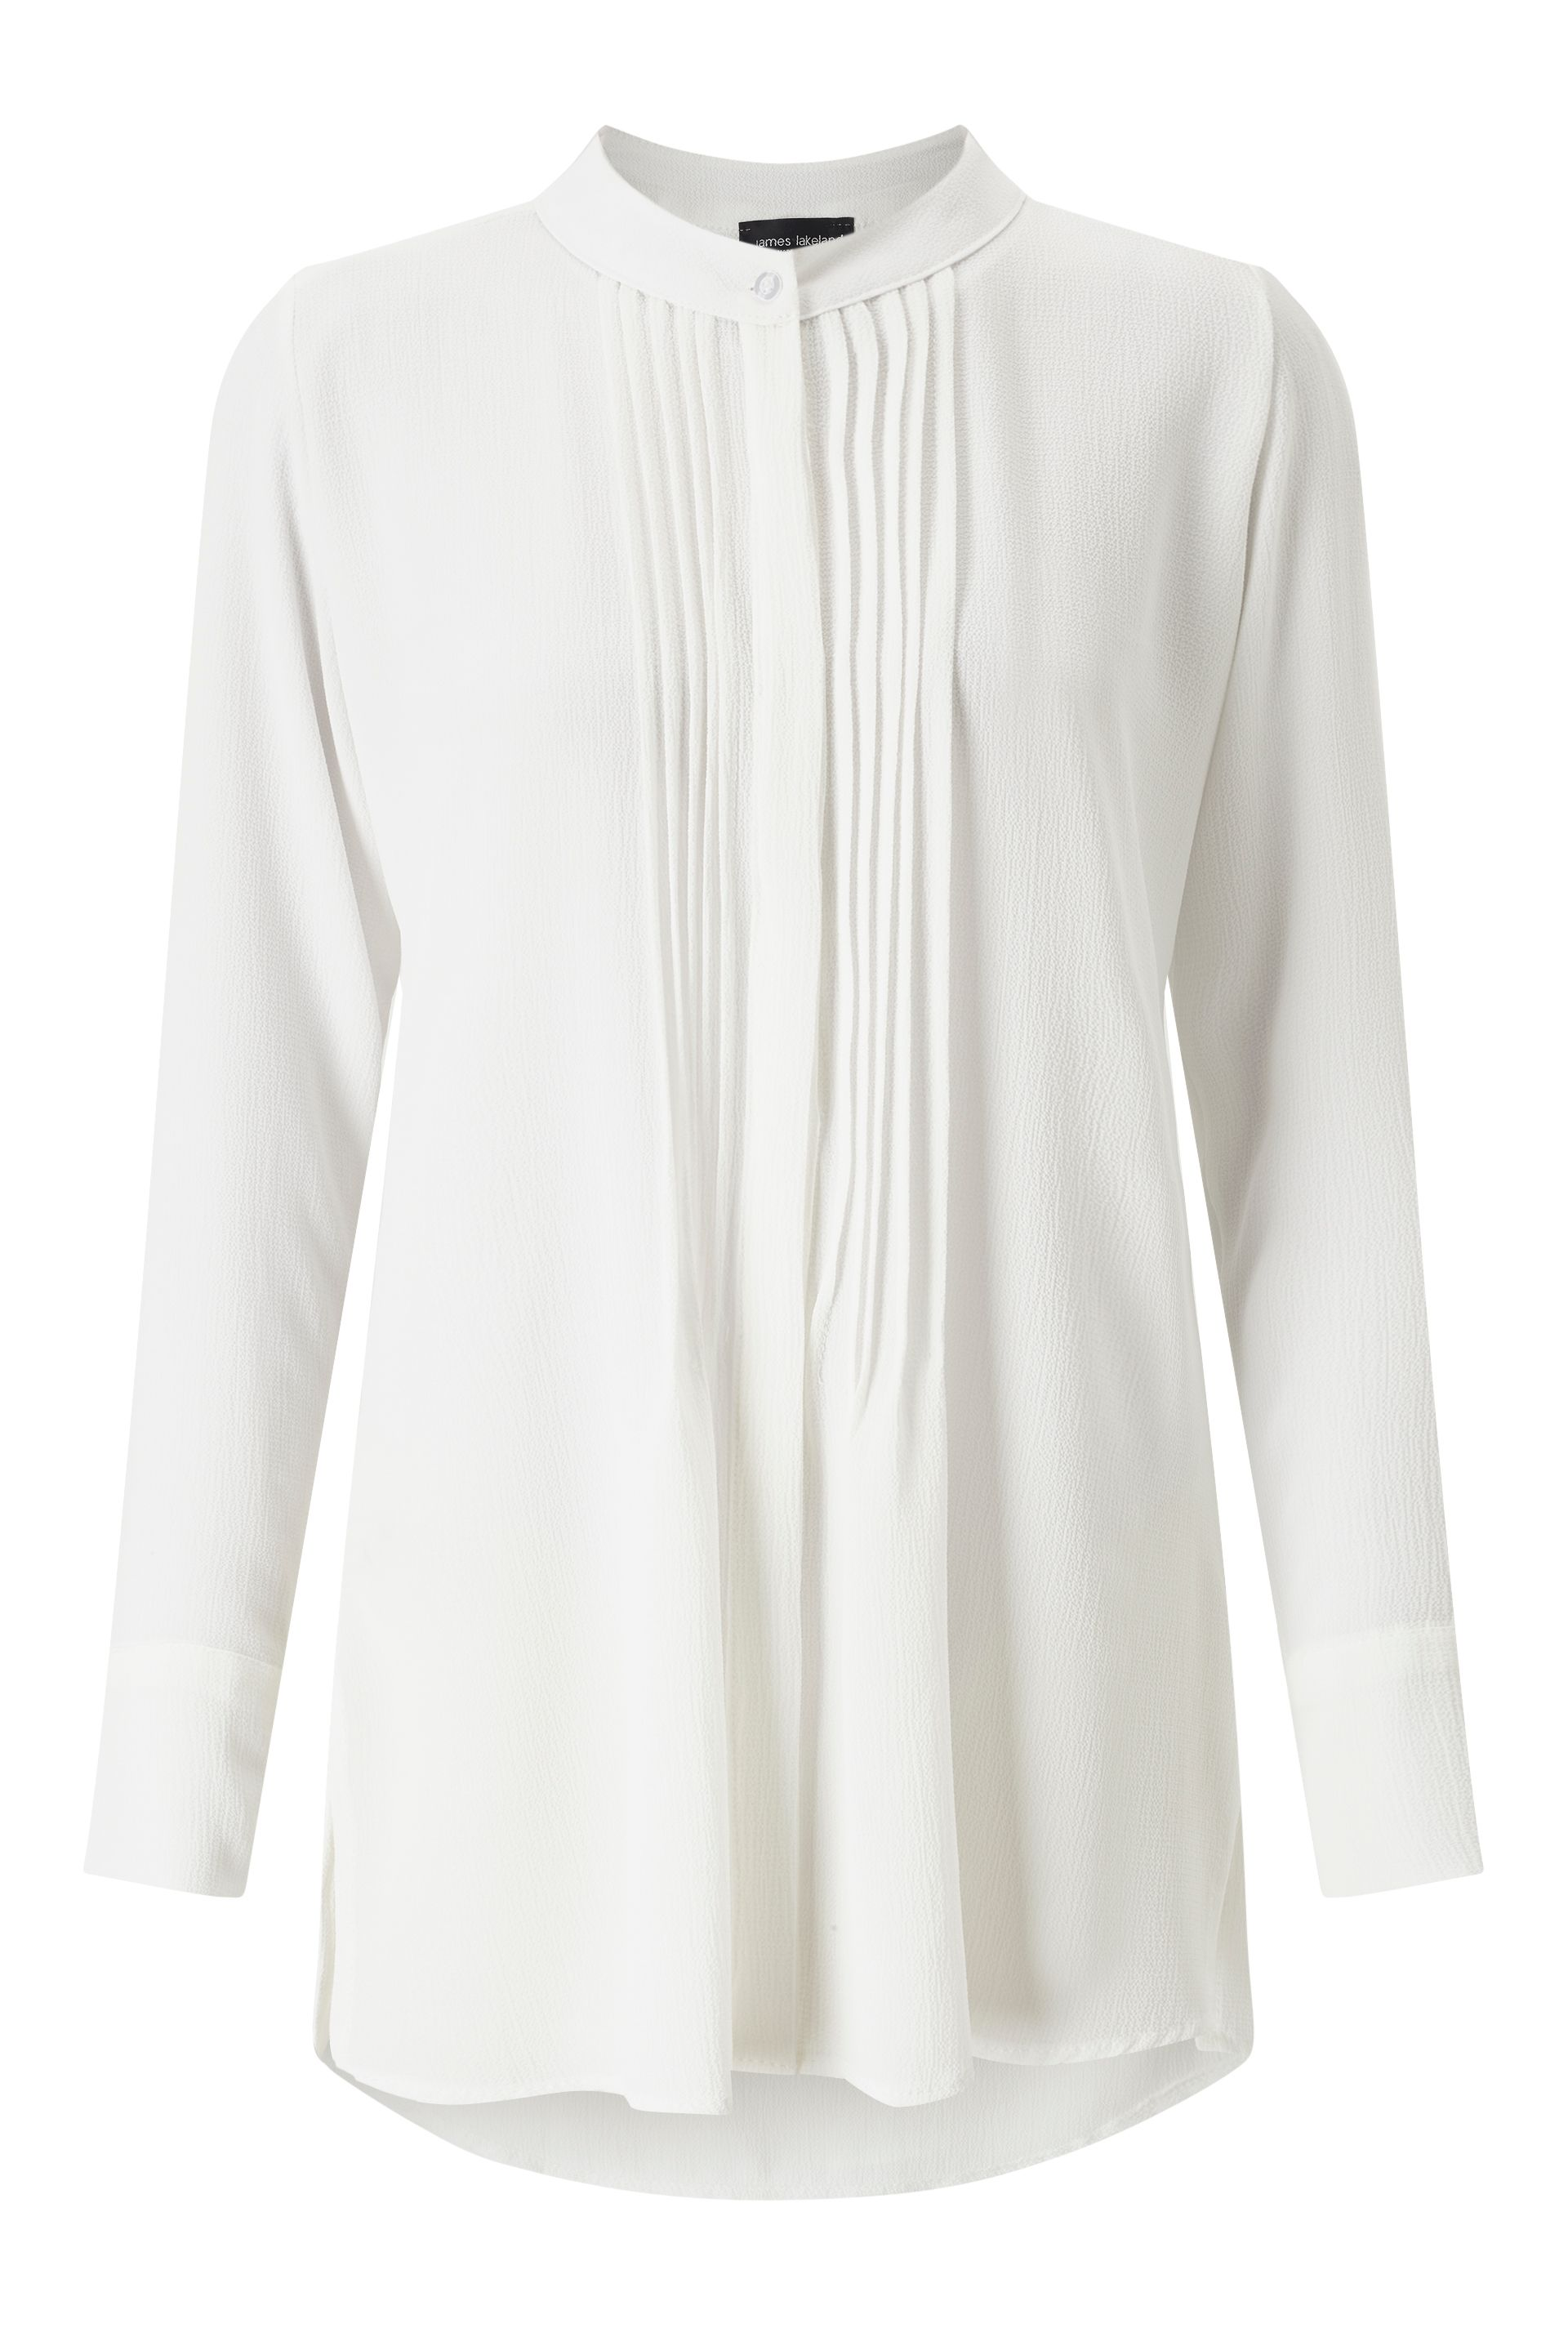 James Lakeland Pleat Front Blouse, Snow